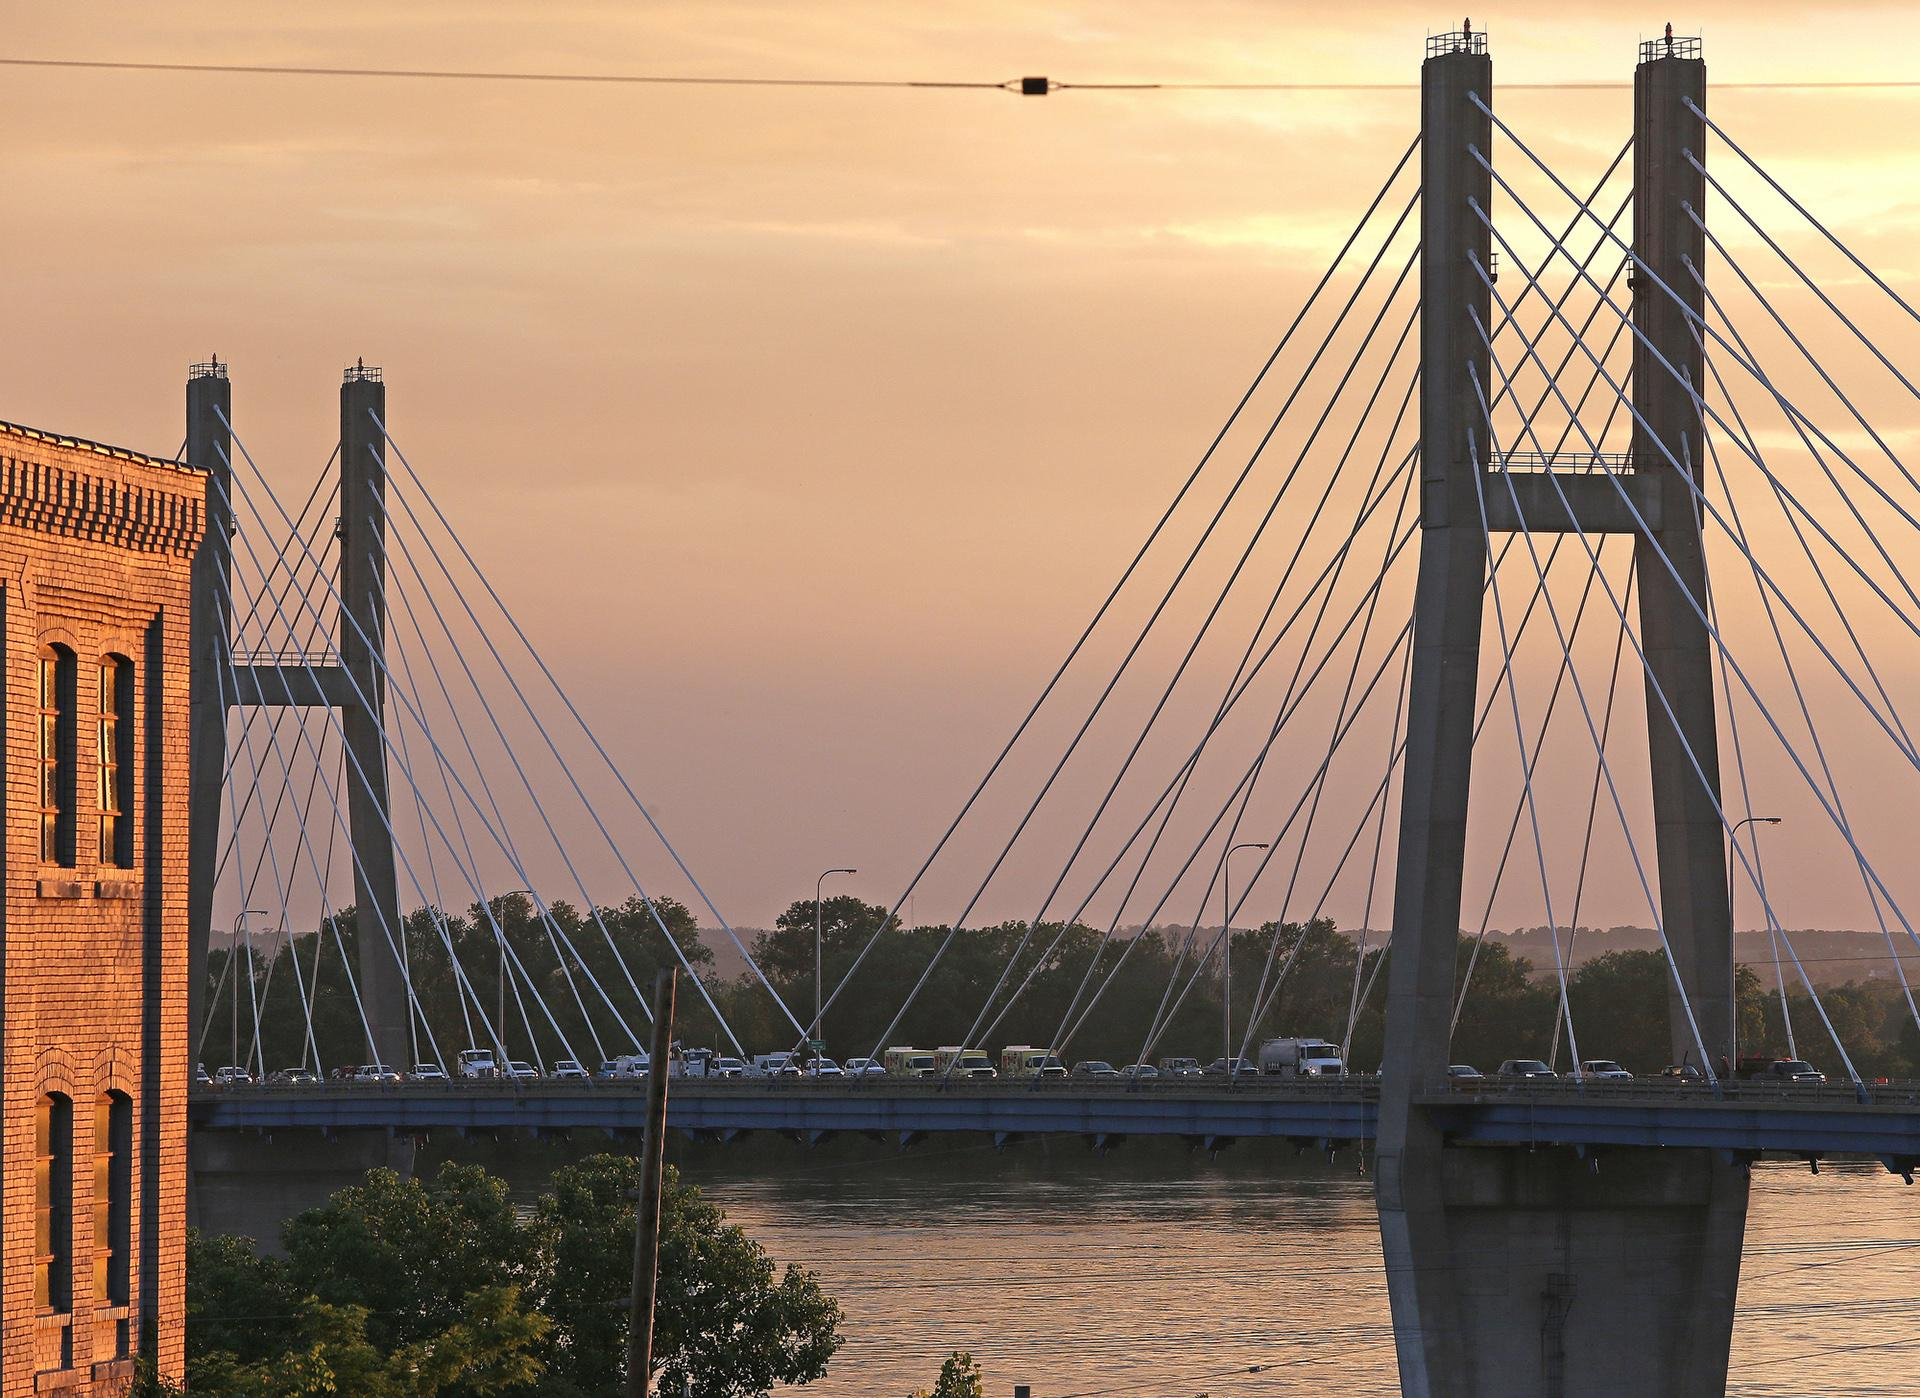 Traffic gets backed up on the Bayview Bridge as vehicles are rerouted in Quincy, Illinois on Thursday, May 30, 2019, after it was closed due to rising Mississippi River waters. The bridge connects Illinois to Missouri via U.S. Route 24. (Jake Shane / Quincy Herald-Whig via AP)